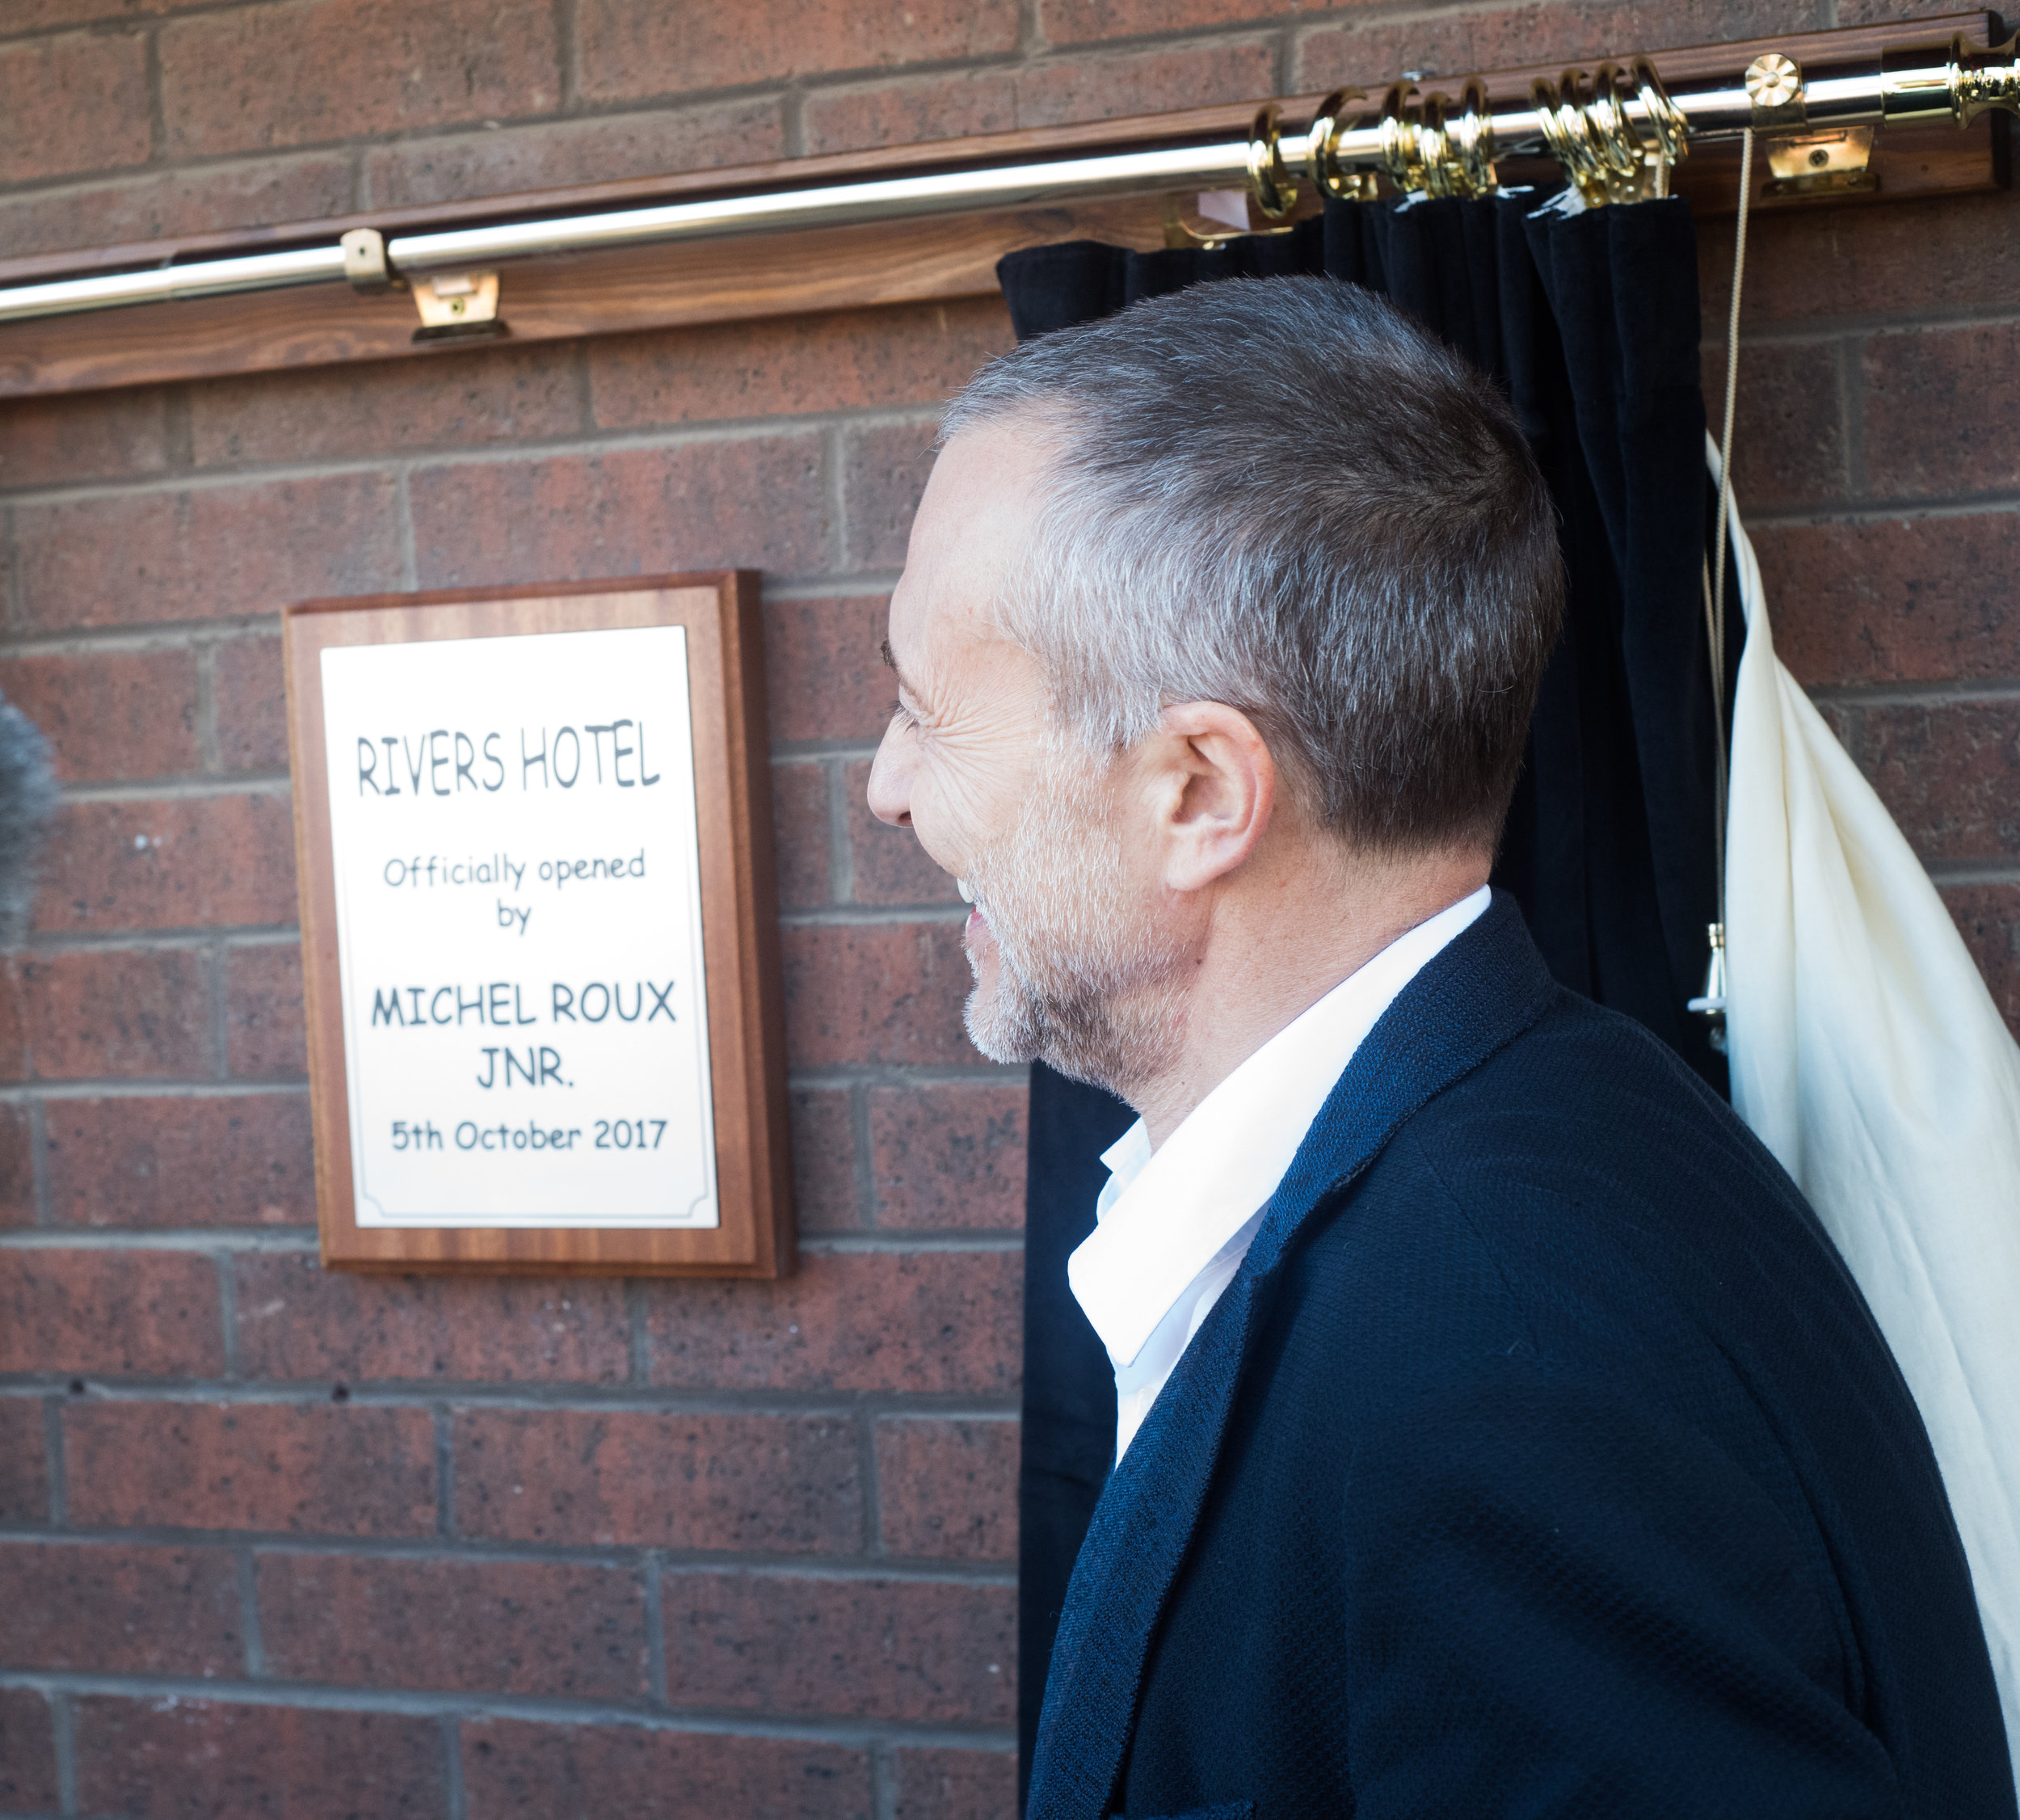 Rivers hotel official opening by Michel Roux Jr.